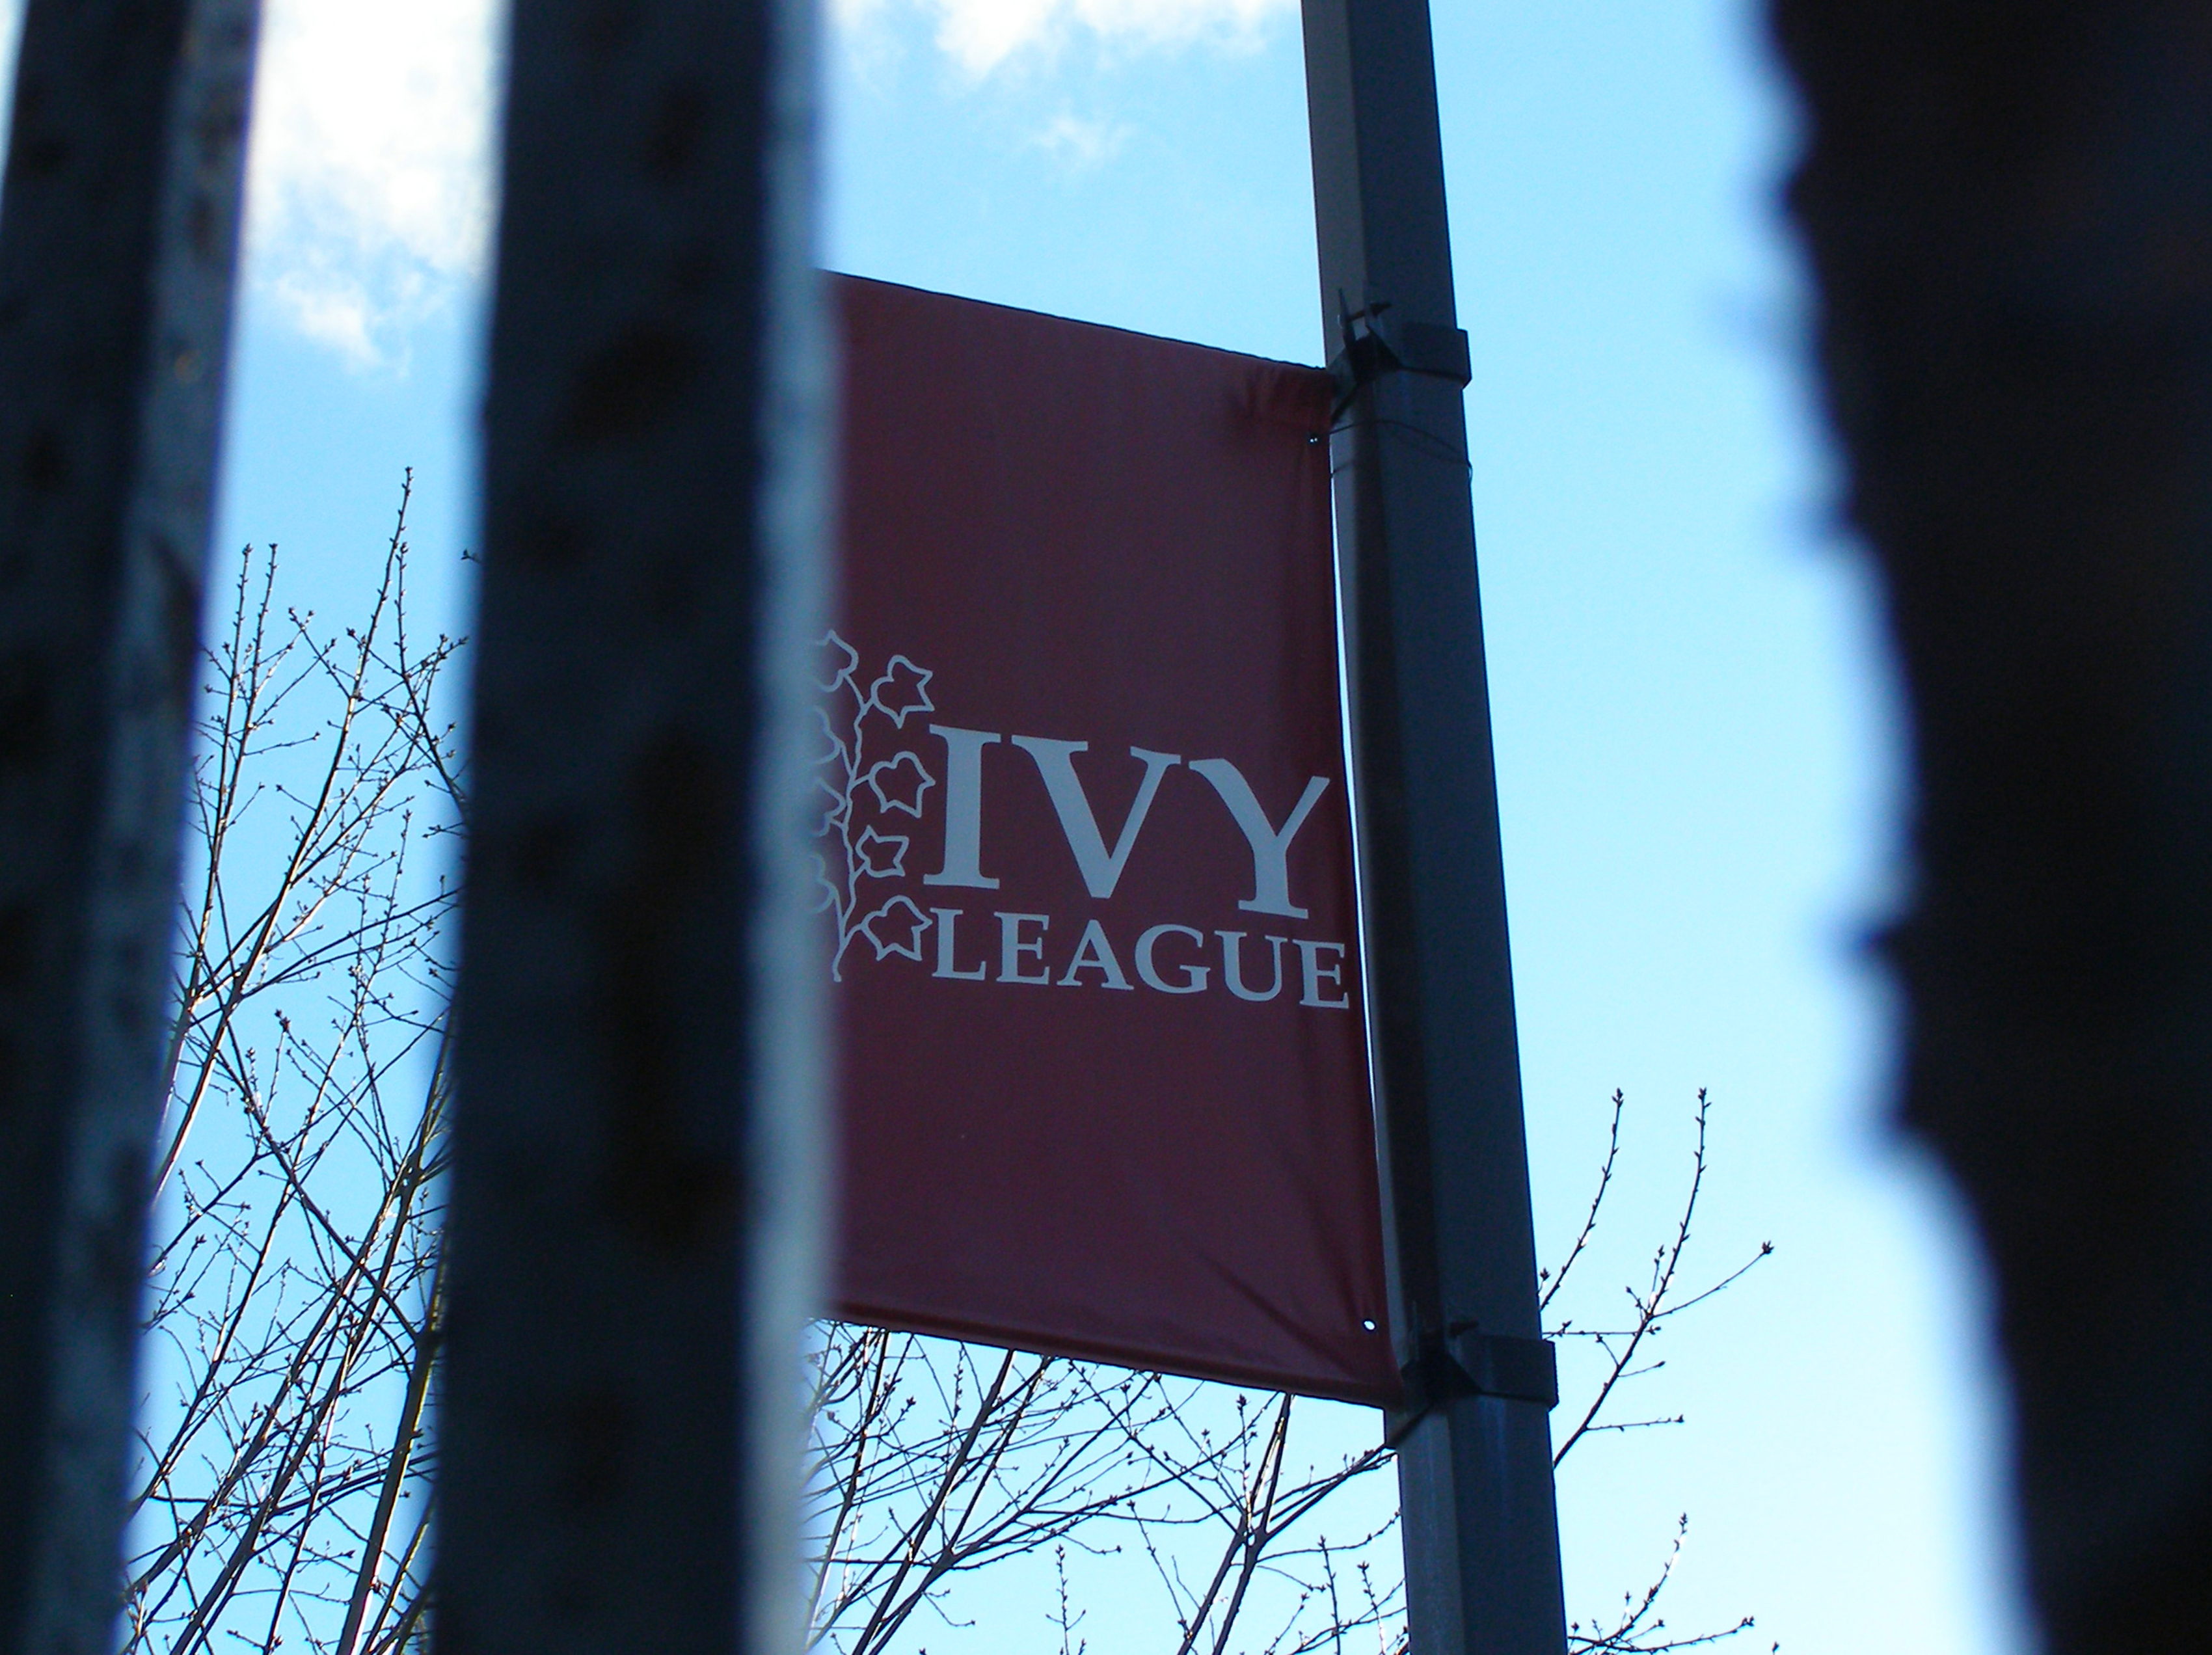 Pictured is a flag that says Ivy League. SHUTTERSTOCK/ Bilal Kocabas